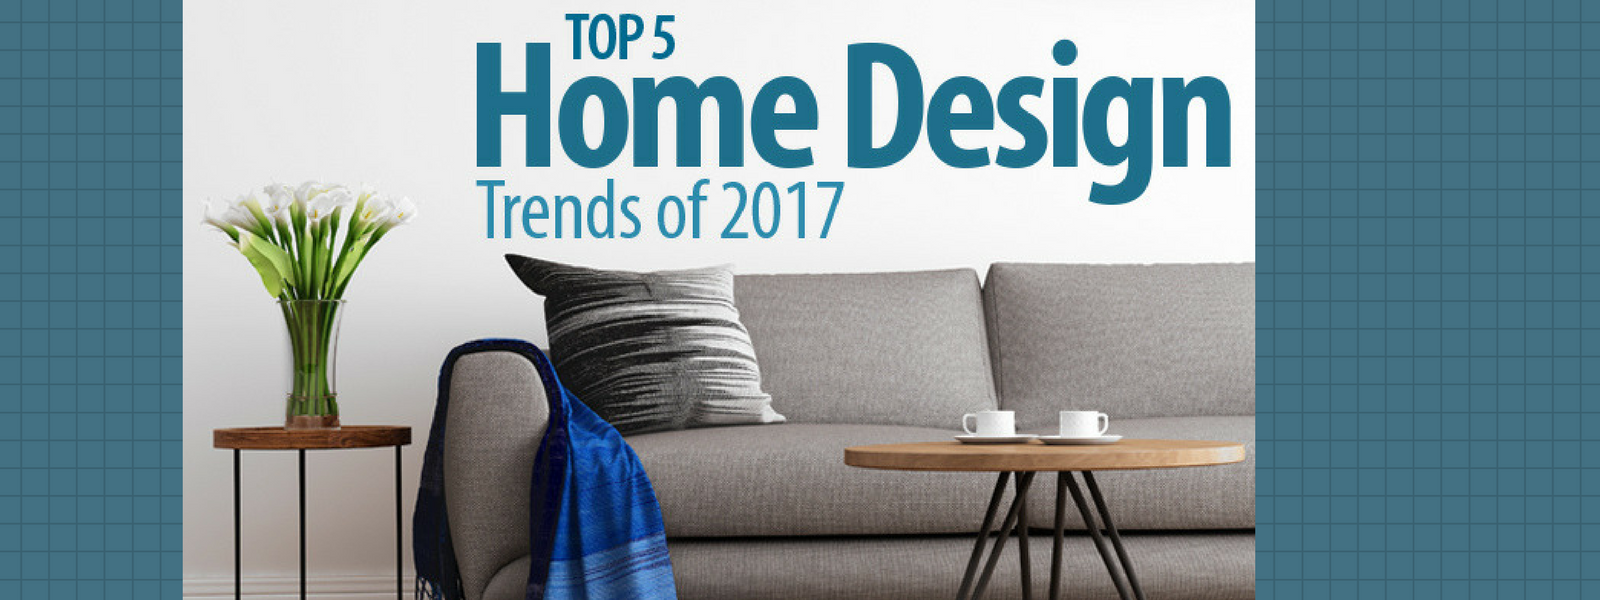 top 5 home design trends of 2017 realty caprock home real estate 101 uncategorized top 5 home design trends of 2017